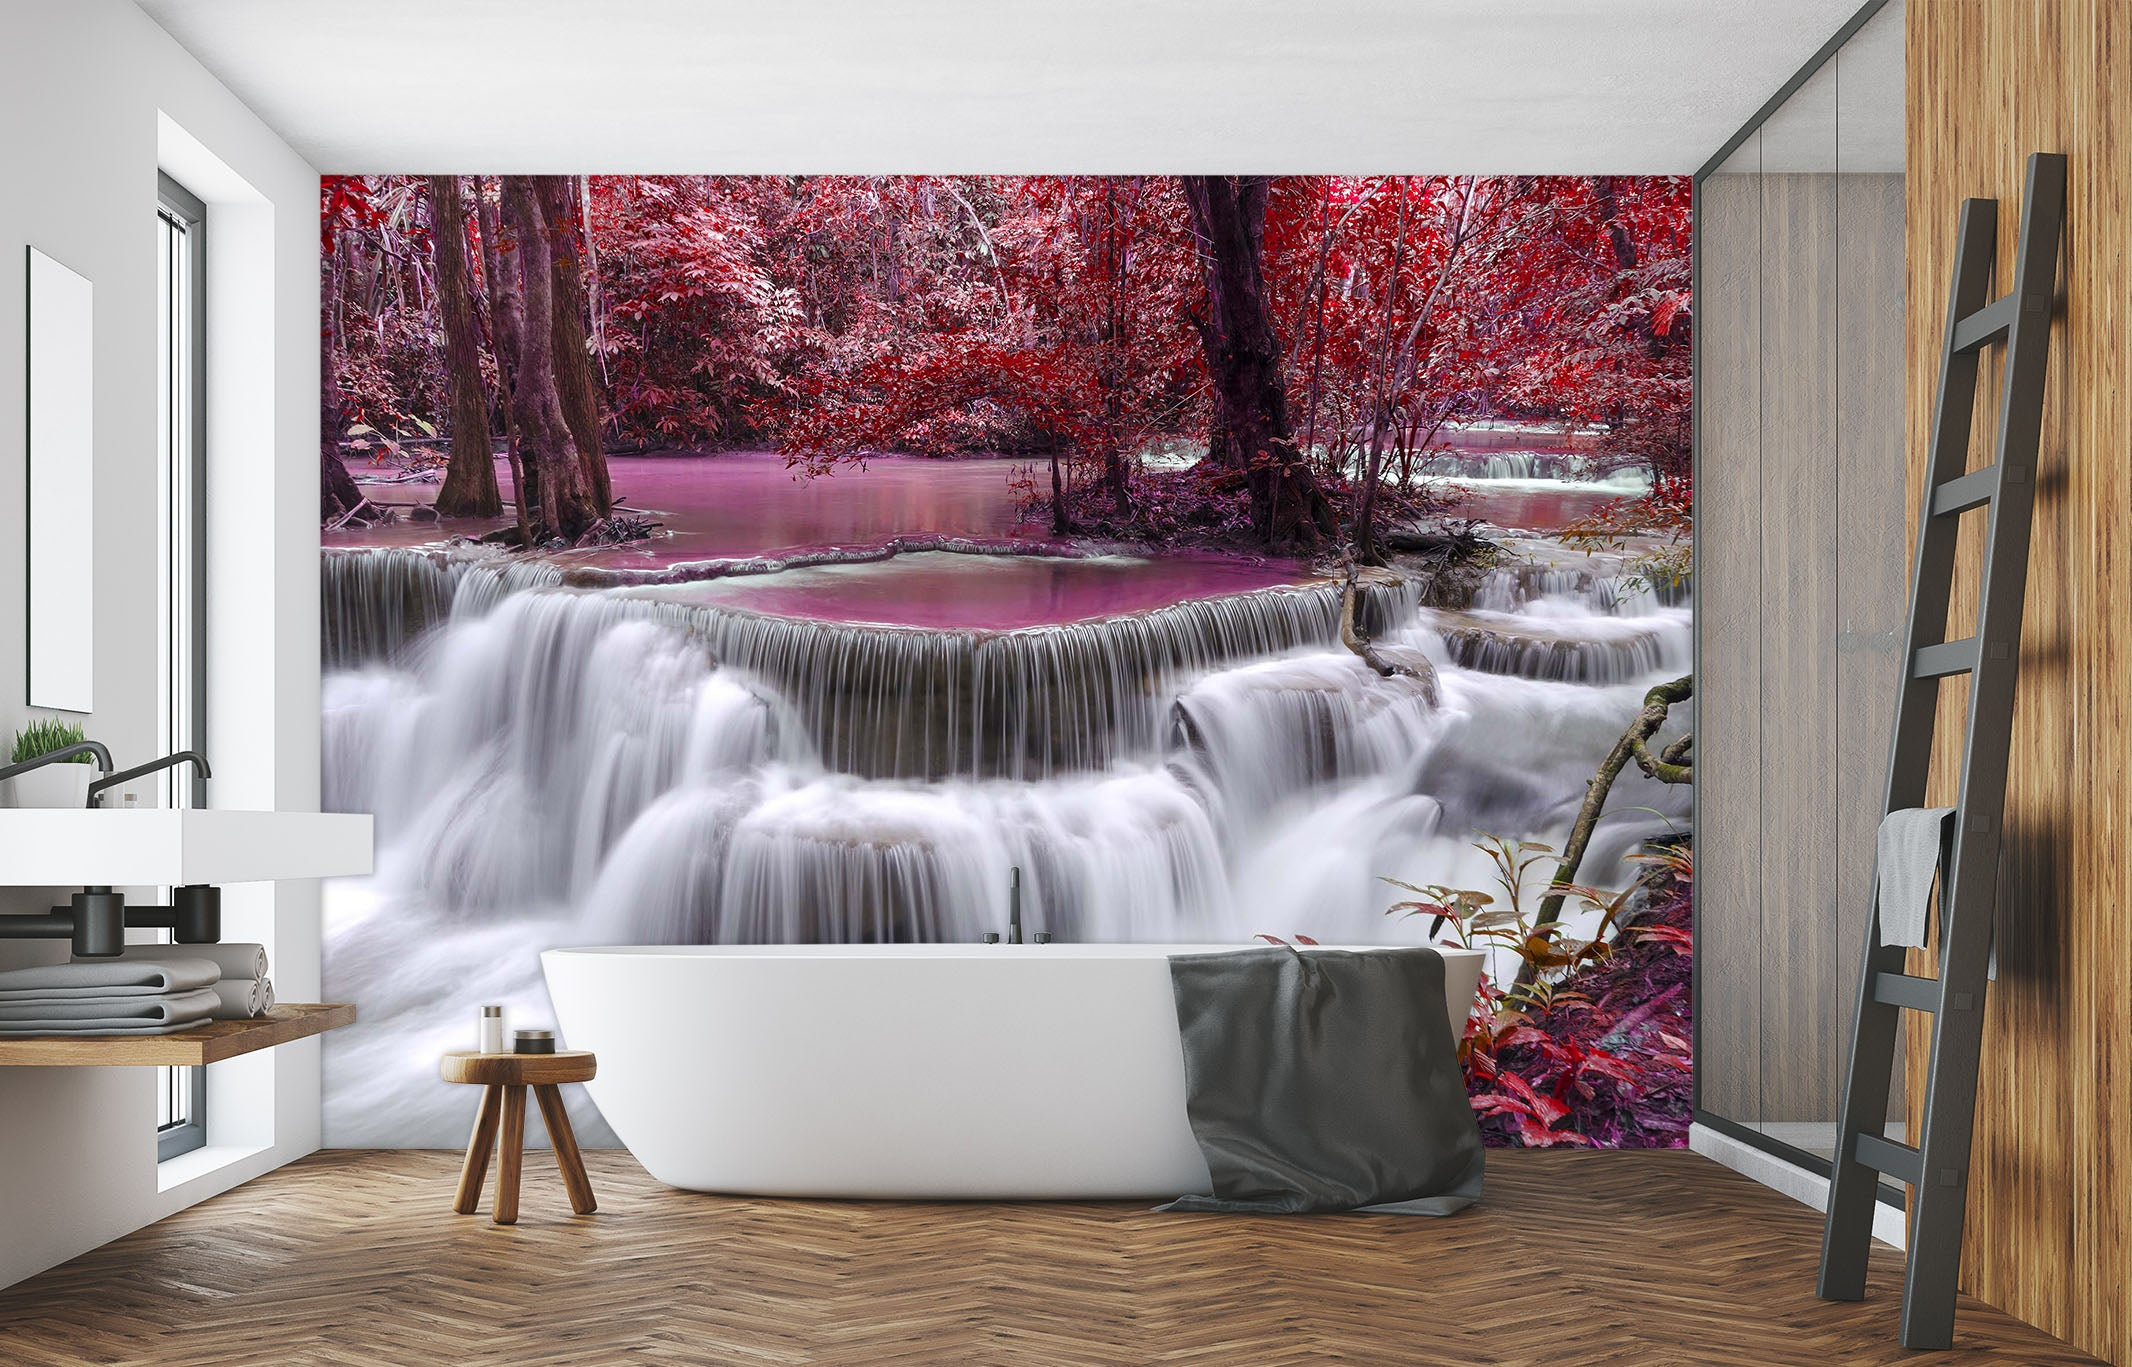 show original title Details about  /3D Waterfall Red ago H205 business Wallpaper Mural Self Adhesive trading on